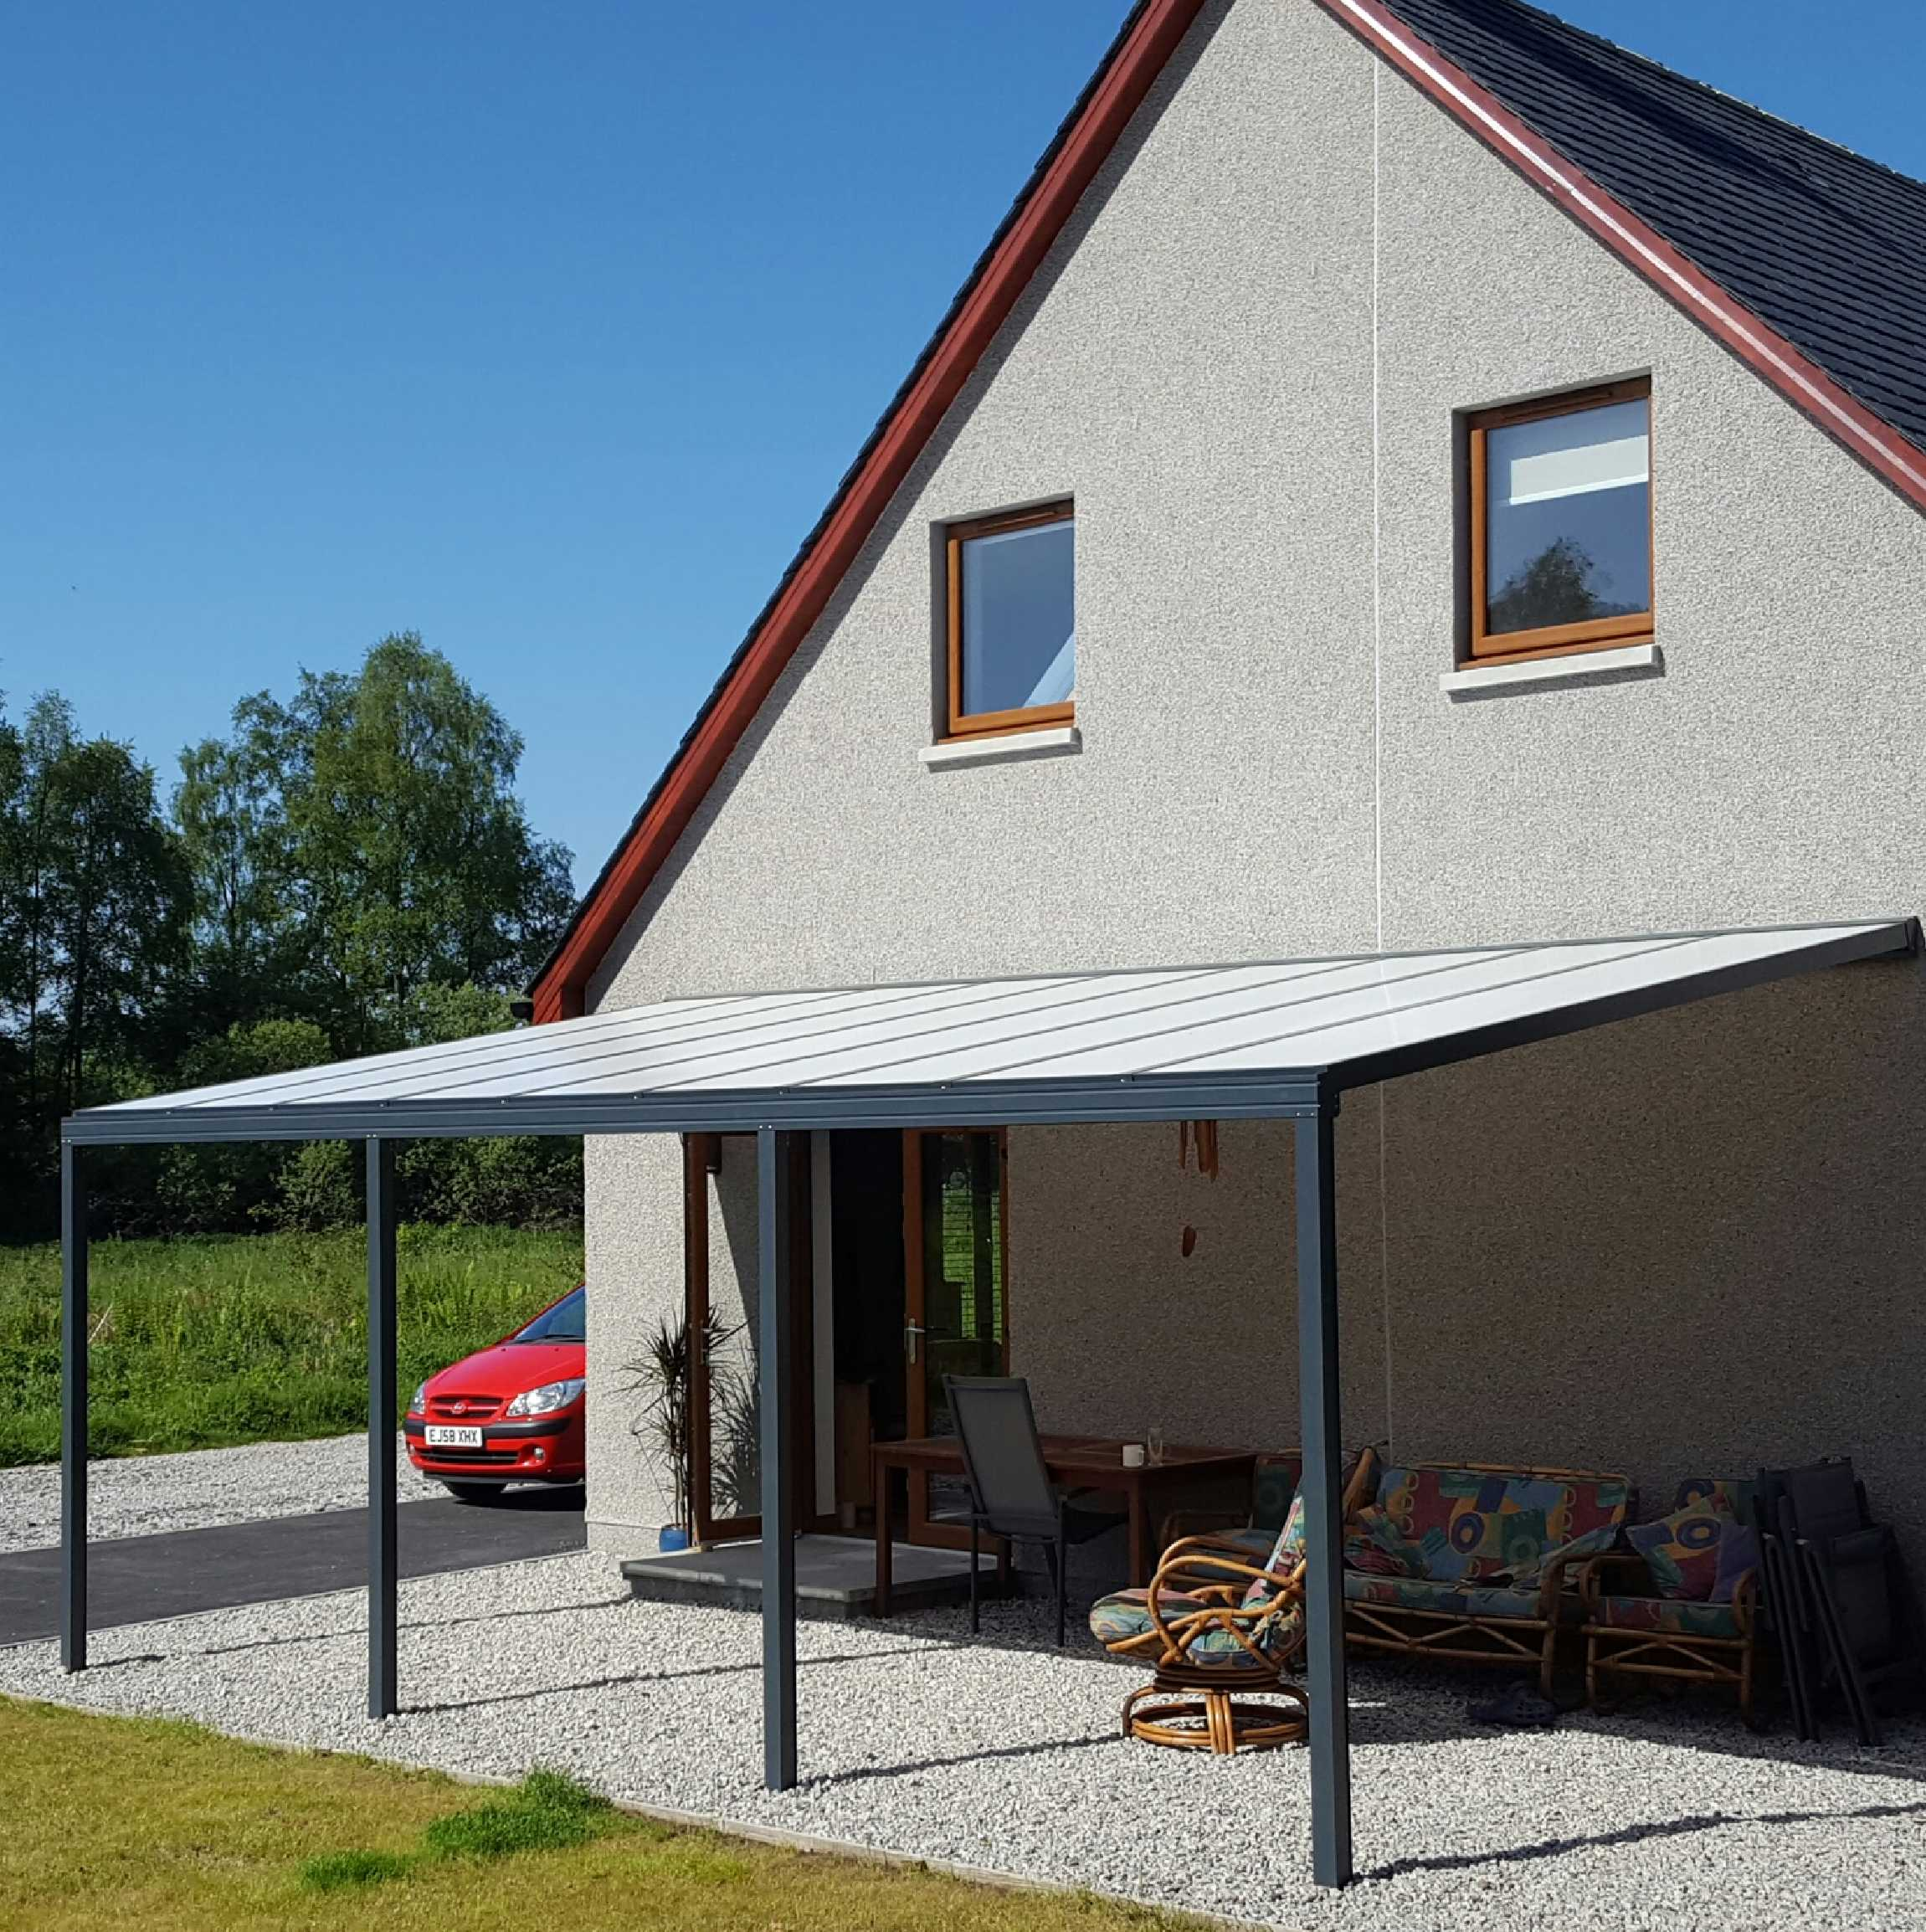 Great selection of Omega Smart Lean-To Canopy, Anthracite Grey, 16mm Polycarbonate Glazing - 3.1m (W) x 2.5m (P), (2) Supporting Posts